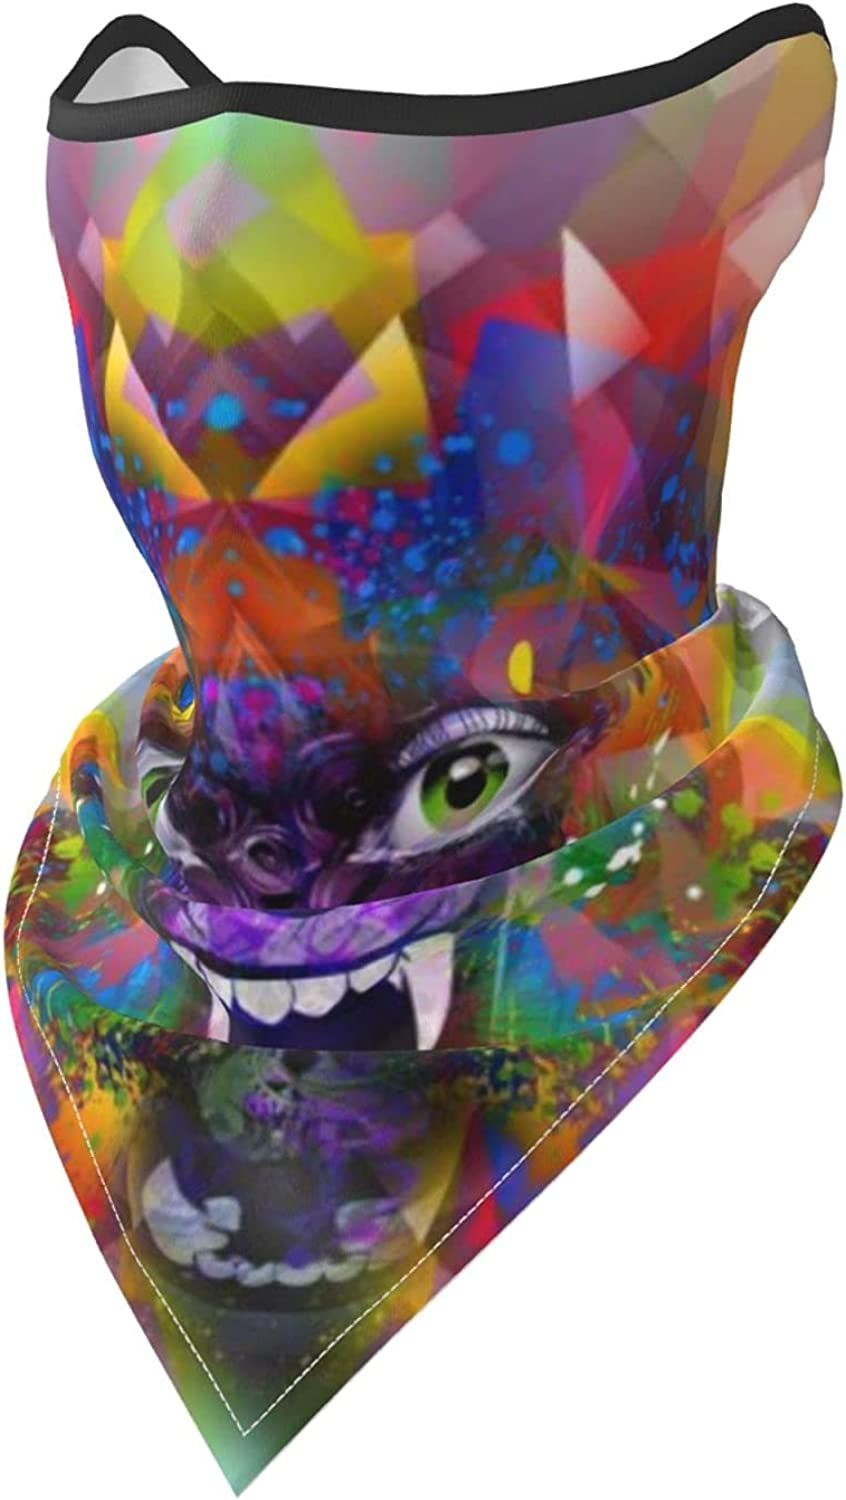 Wolf Howling Animal Face Colorful-2 Breathable Bandana Face Mask Neck Gaiter Windproof Sports Mask Scarf Headwear for Men Women Outdoor Hiking Cycling Running Motorcycling